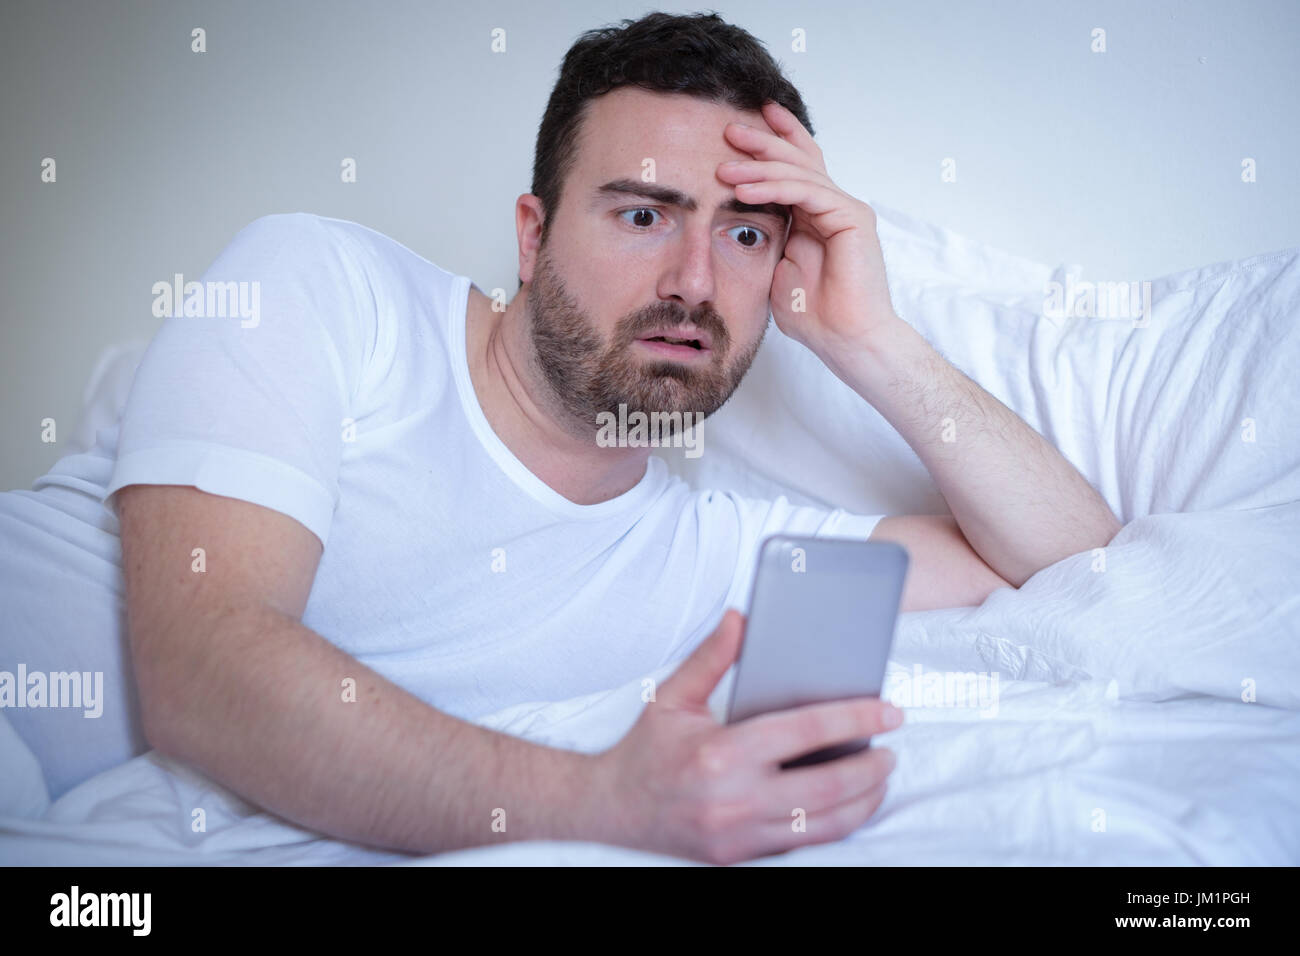 Upset man discovering infidelity affair spying mobile phone - Stock Image